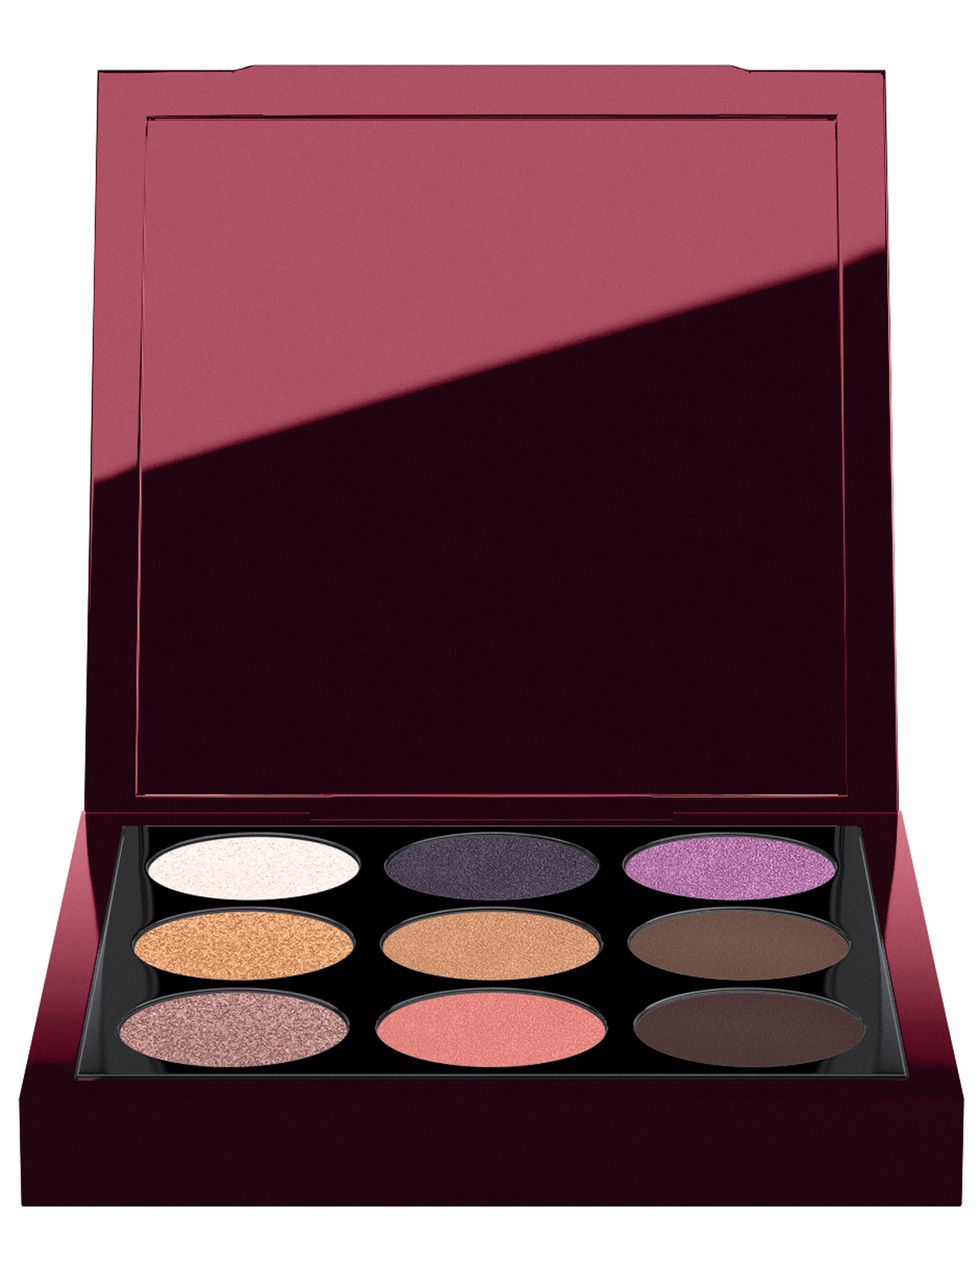 Age Ain't Nothing Eyeshadow Palette, $32